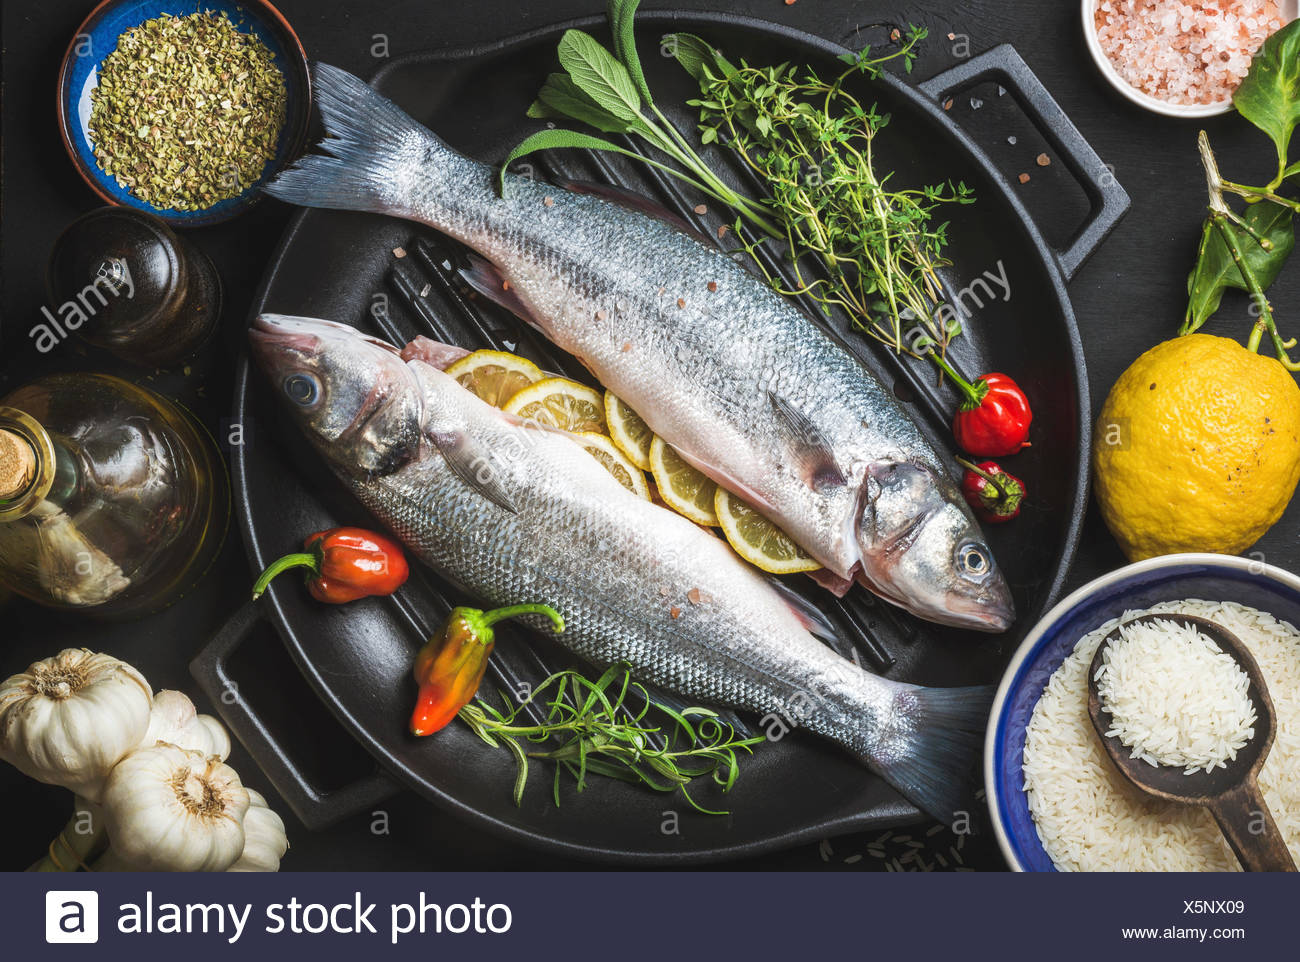 Ingredients for cookig healthy fish dinner. Raw uncooked seabass fish with rice, lemon, herbs and spices on black grilling iron - Stock Image